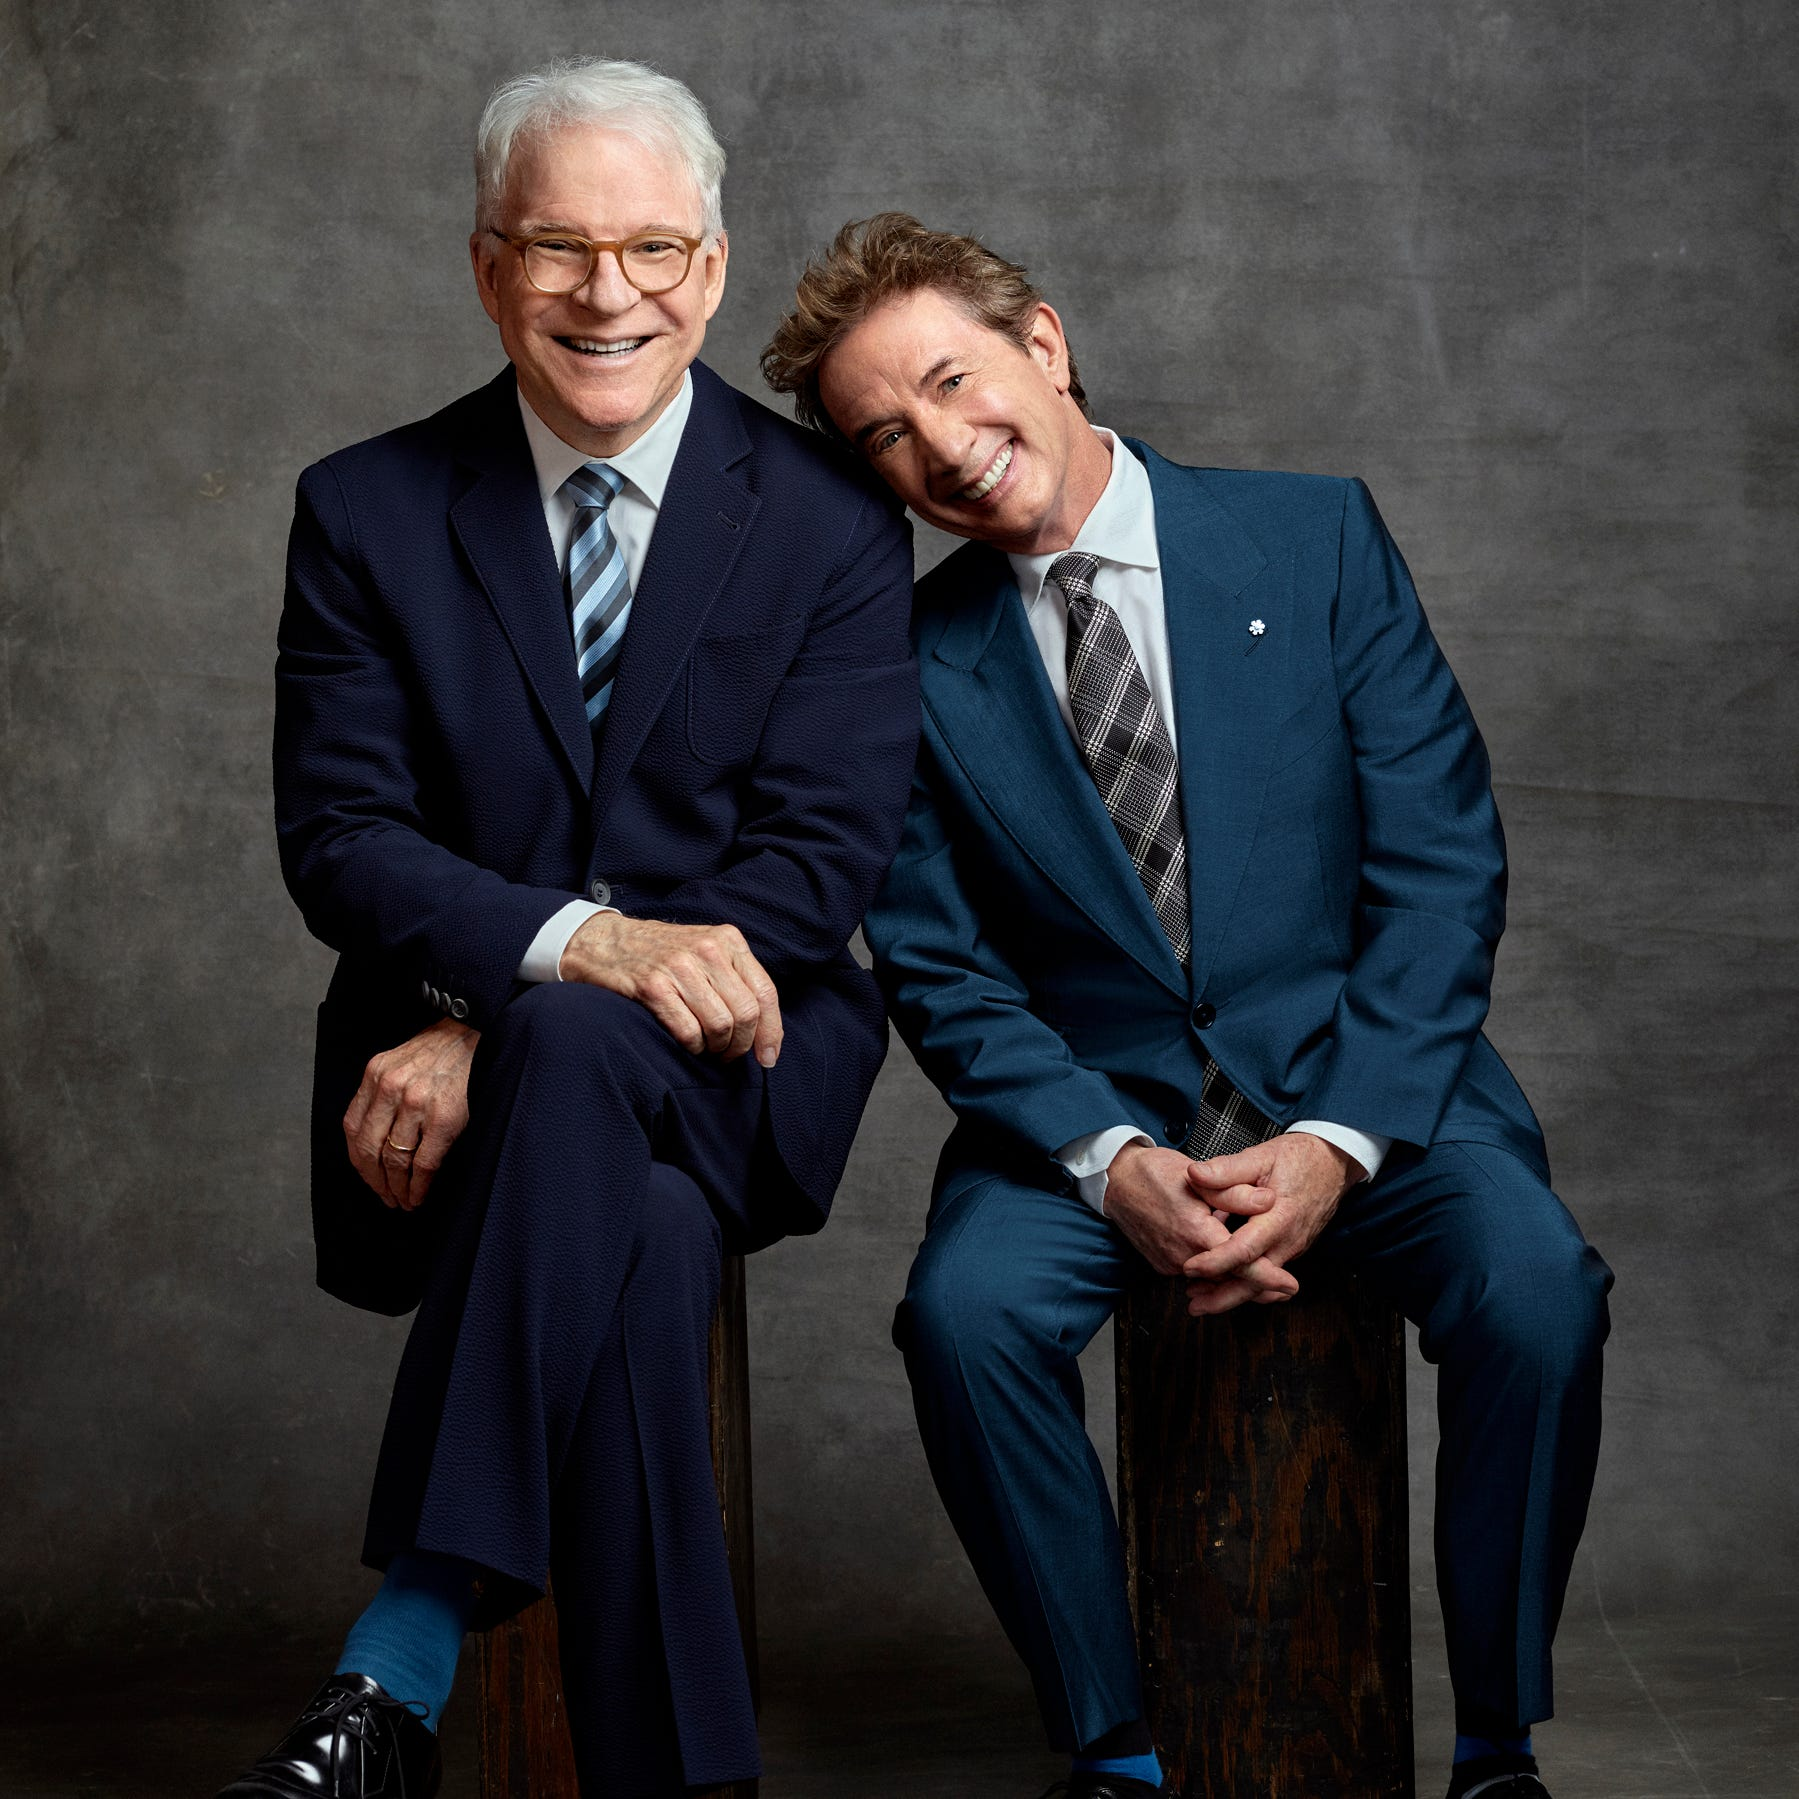 Steve Martin and Martin Short will bring music and comedy to the Palladium